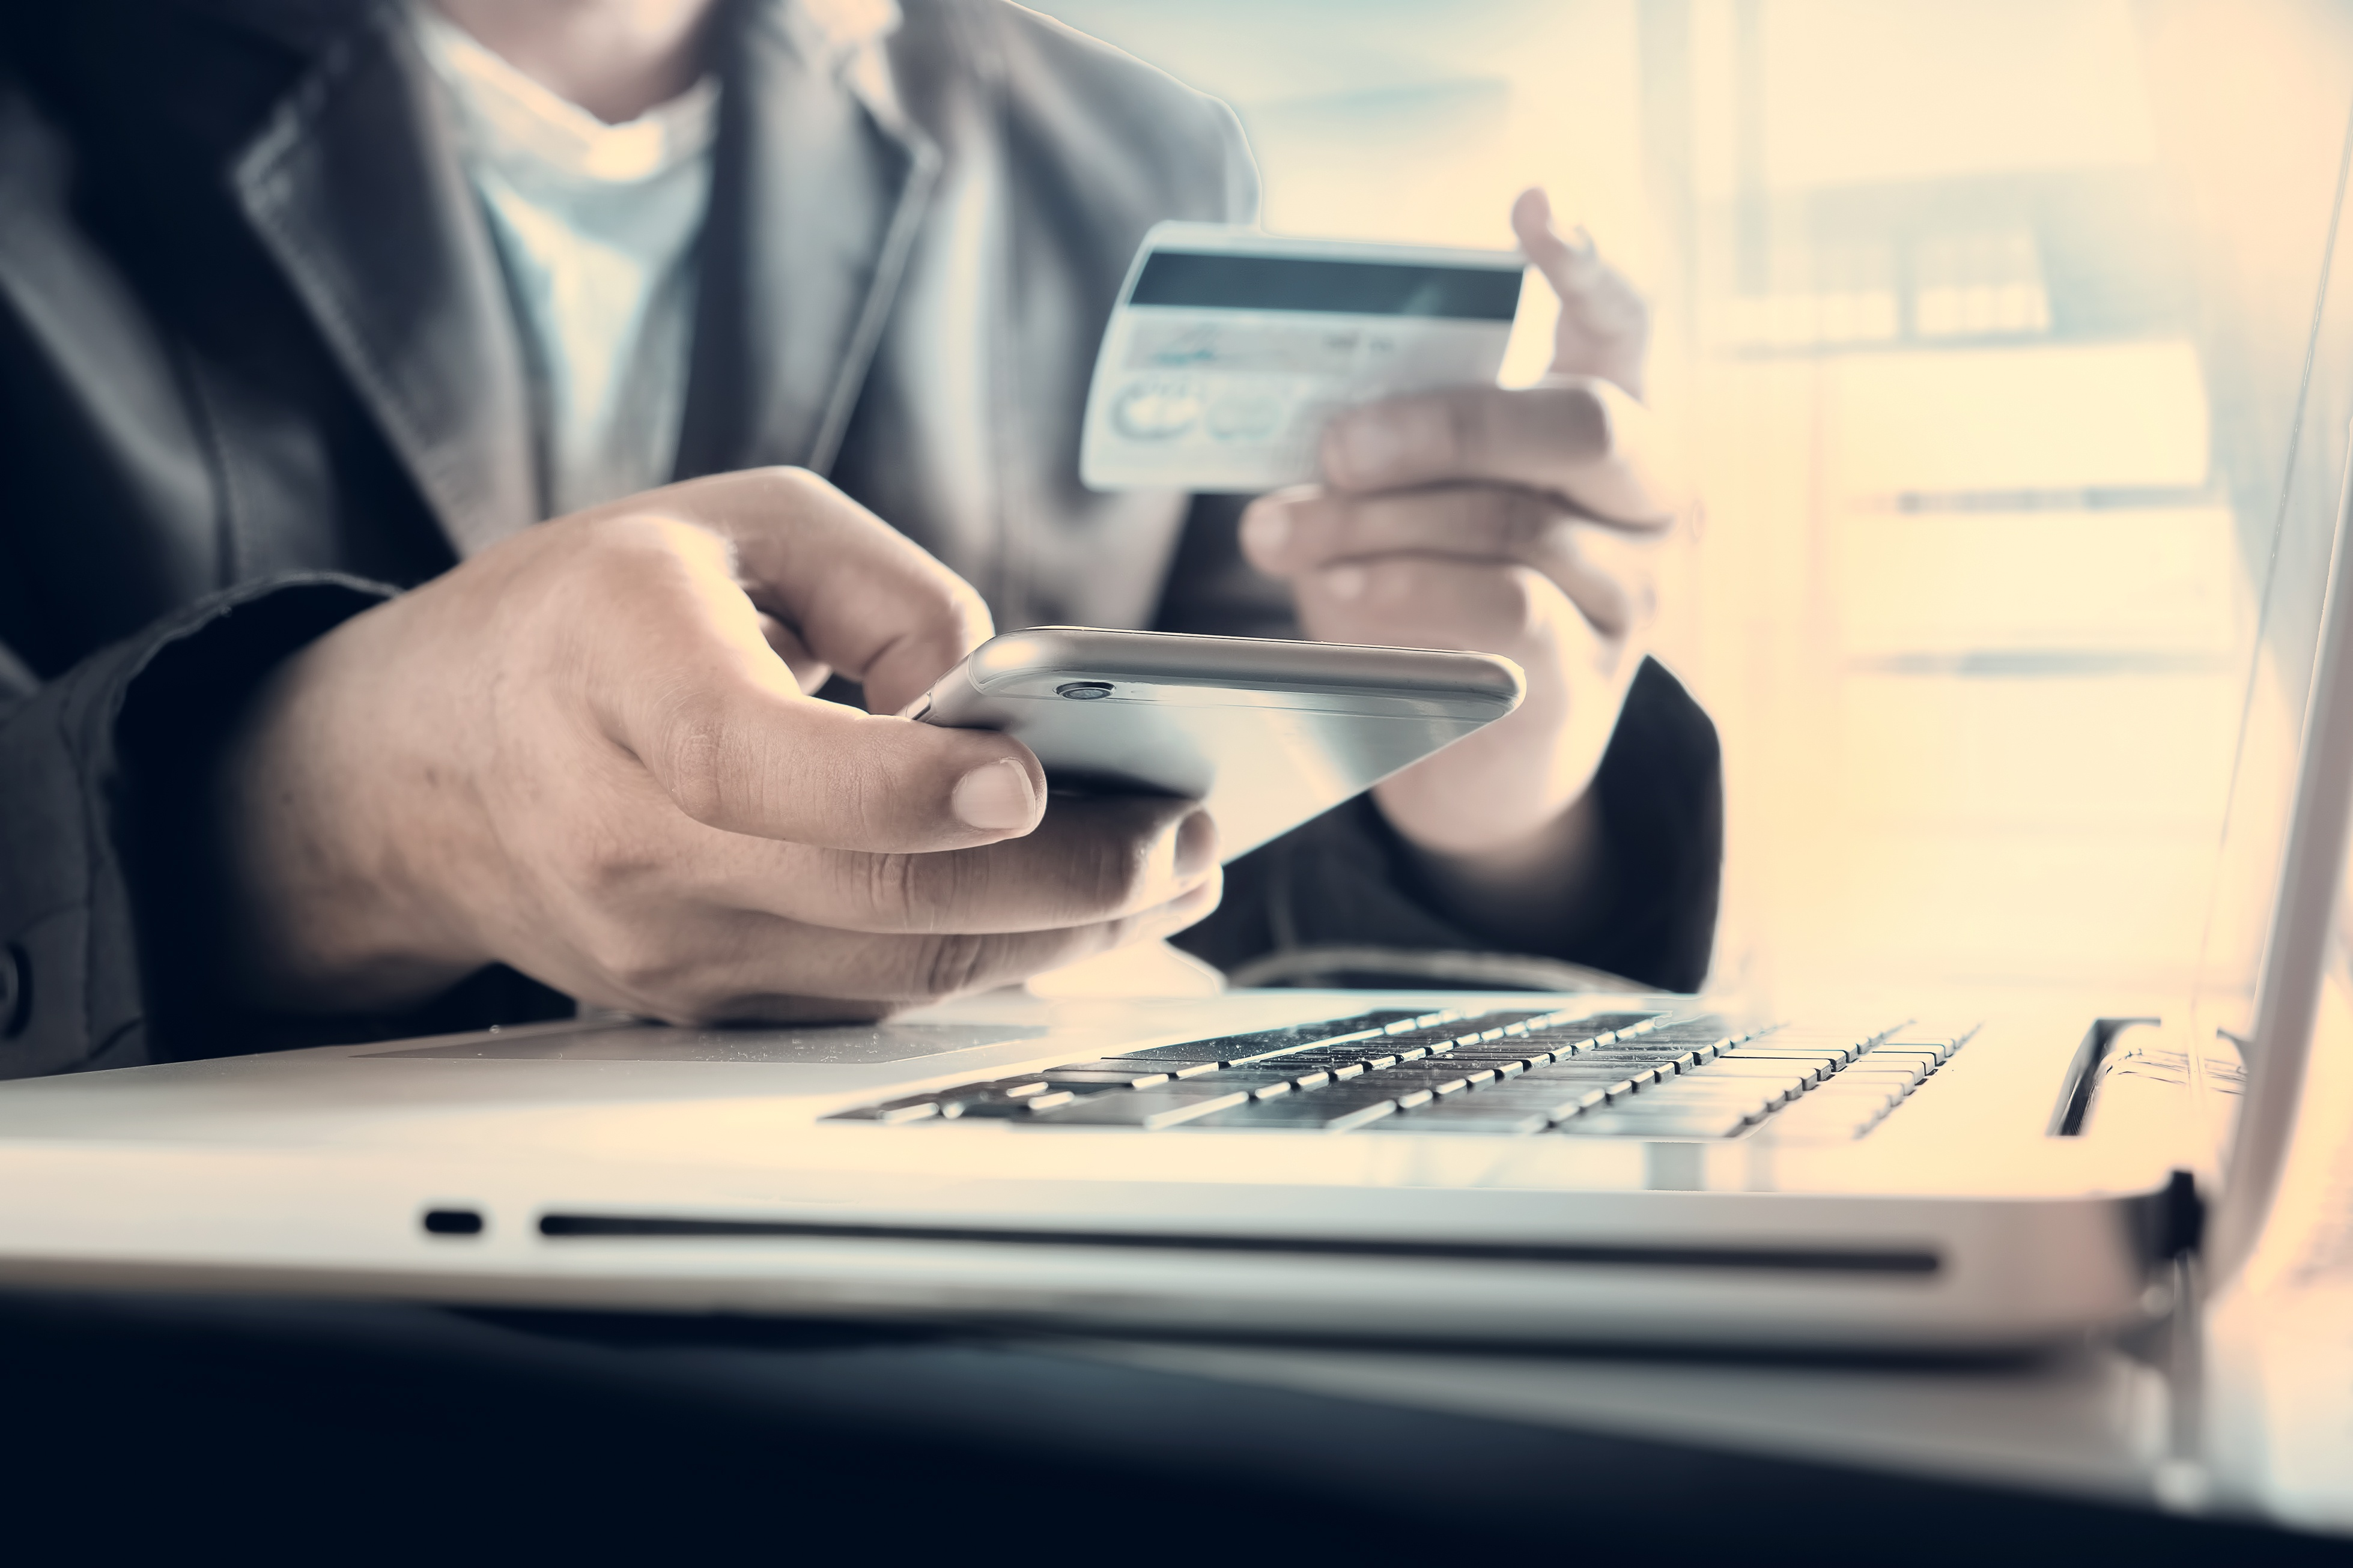 Man using a credit card on laptop